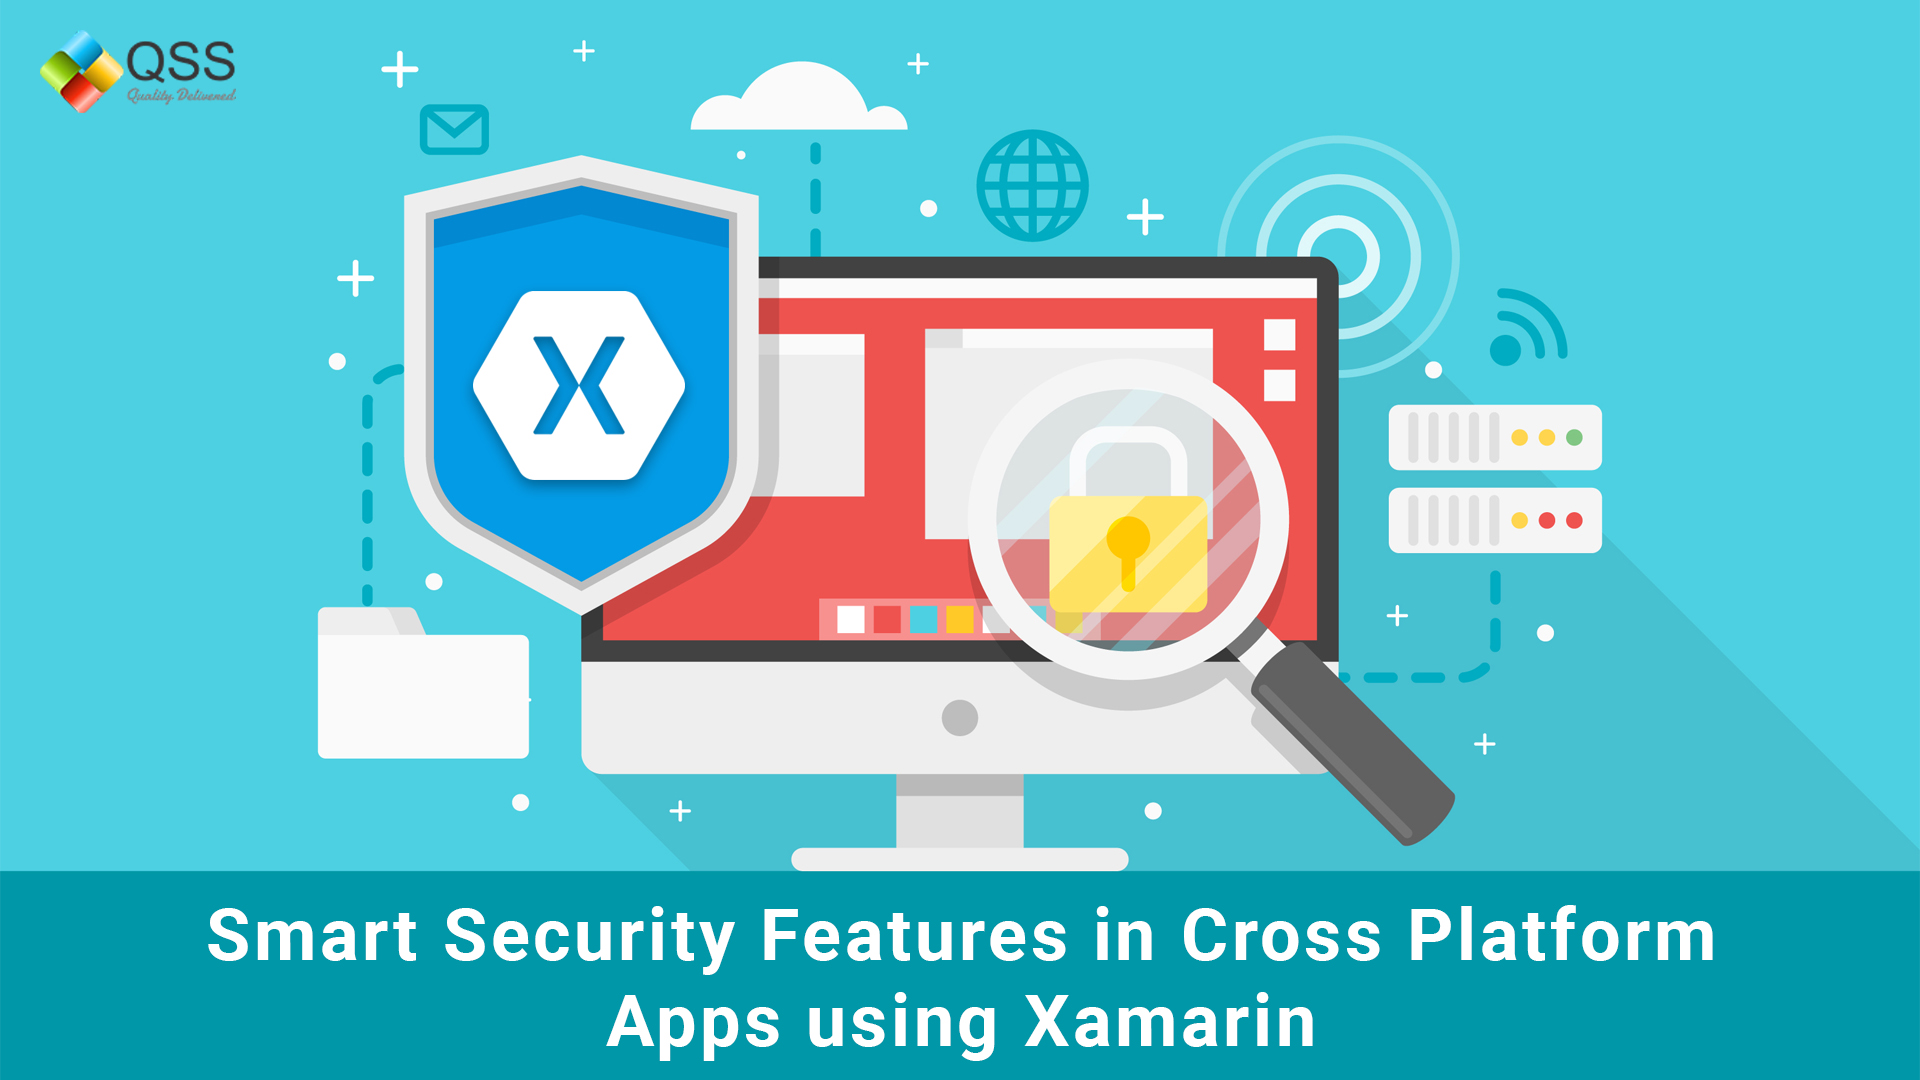 Smart Security Features in Cross Platform Apps using Xamarin